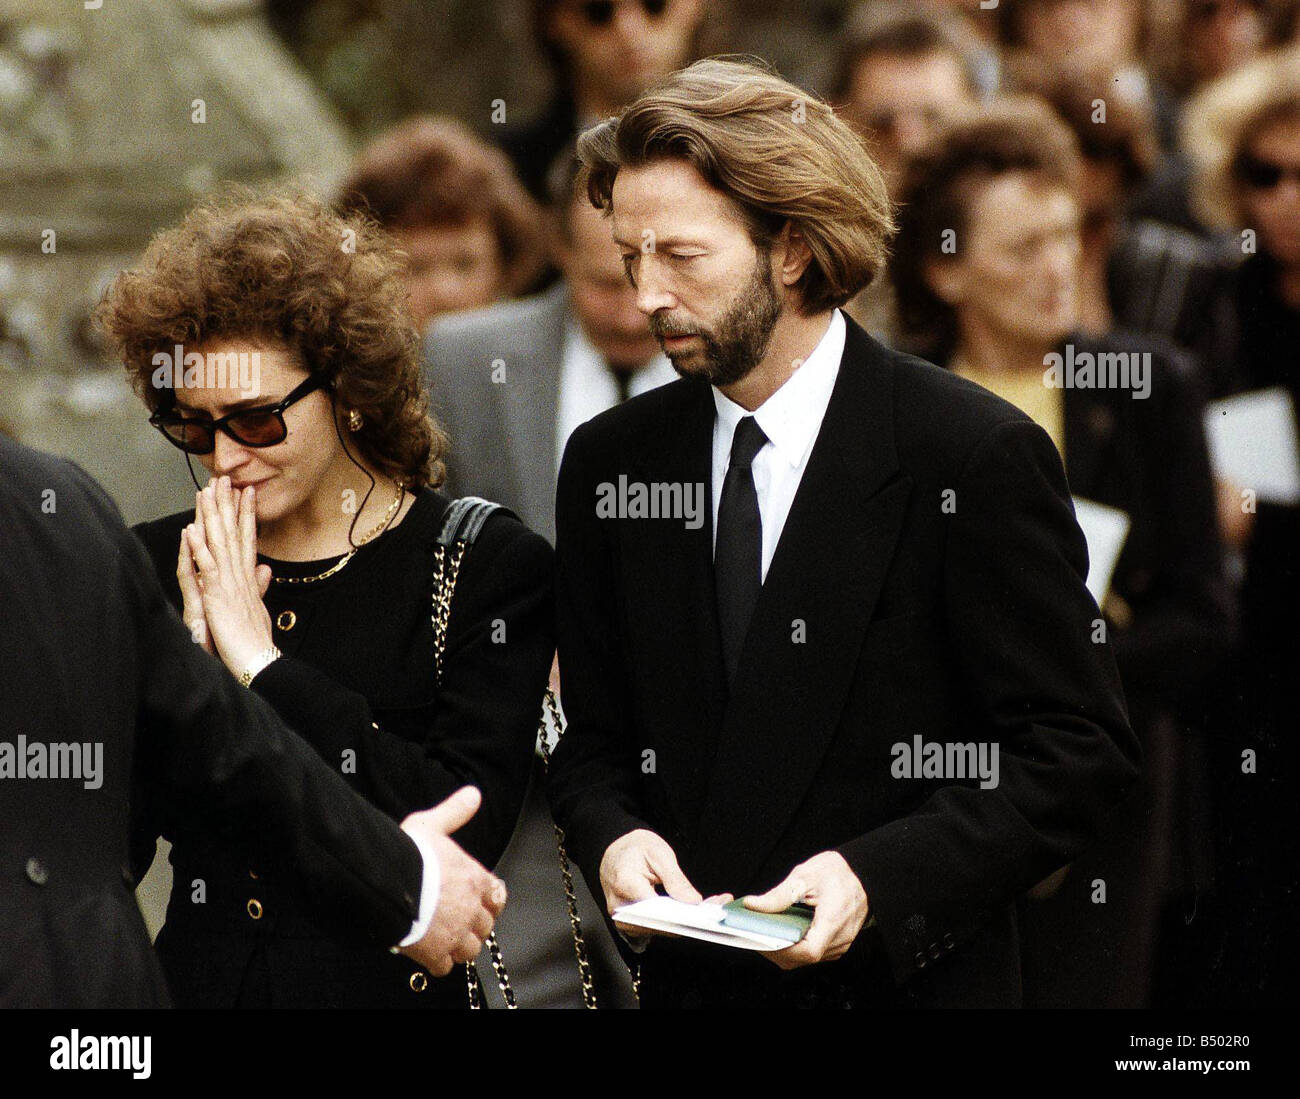 eric clapton singer with the mother of his son lori dal santo at the stock photo 20285860 alamy. Black Bedroom Furniture Sets. Home Design Ideas